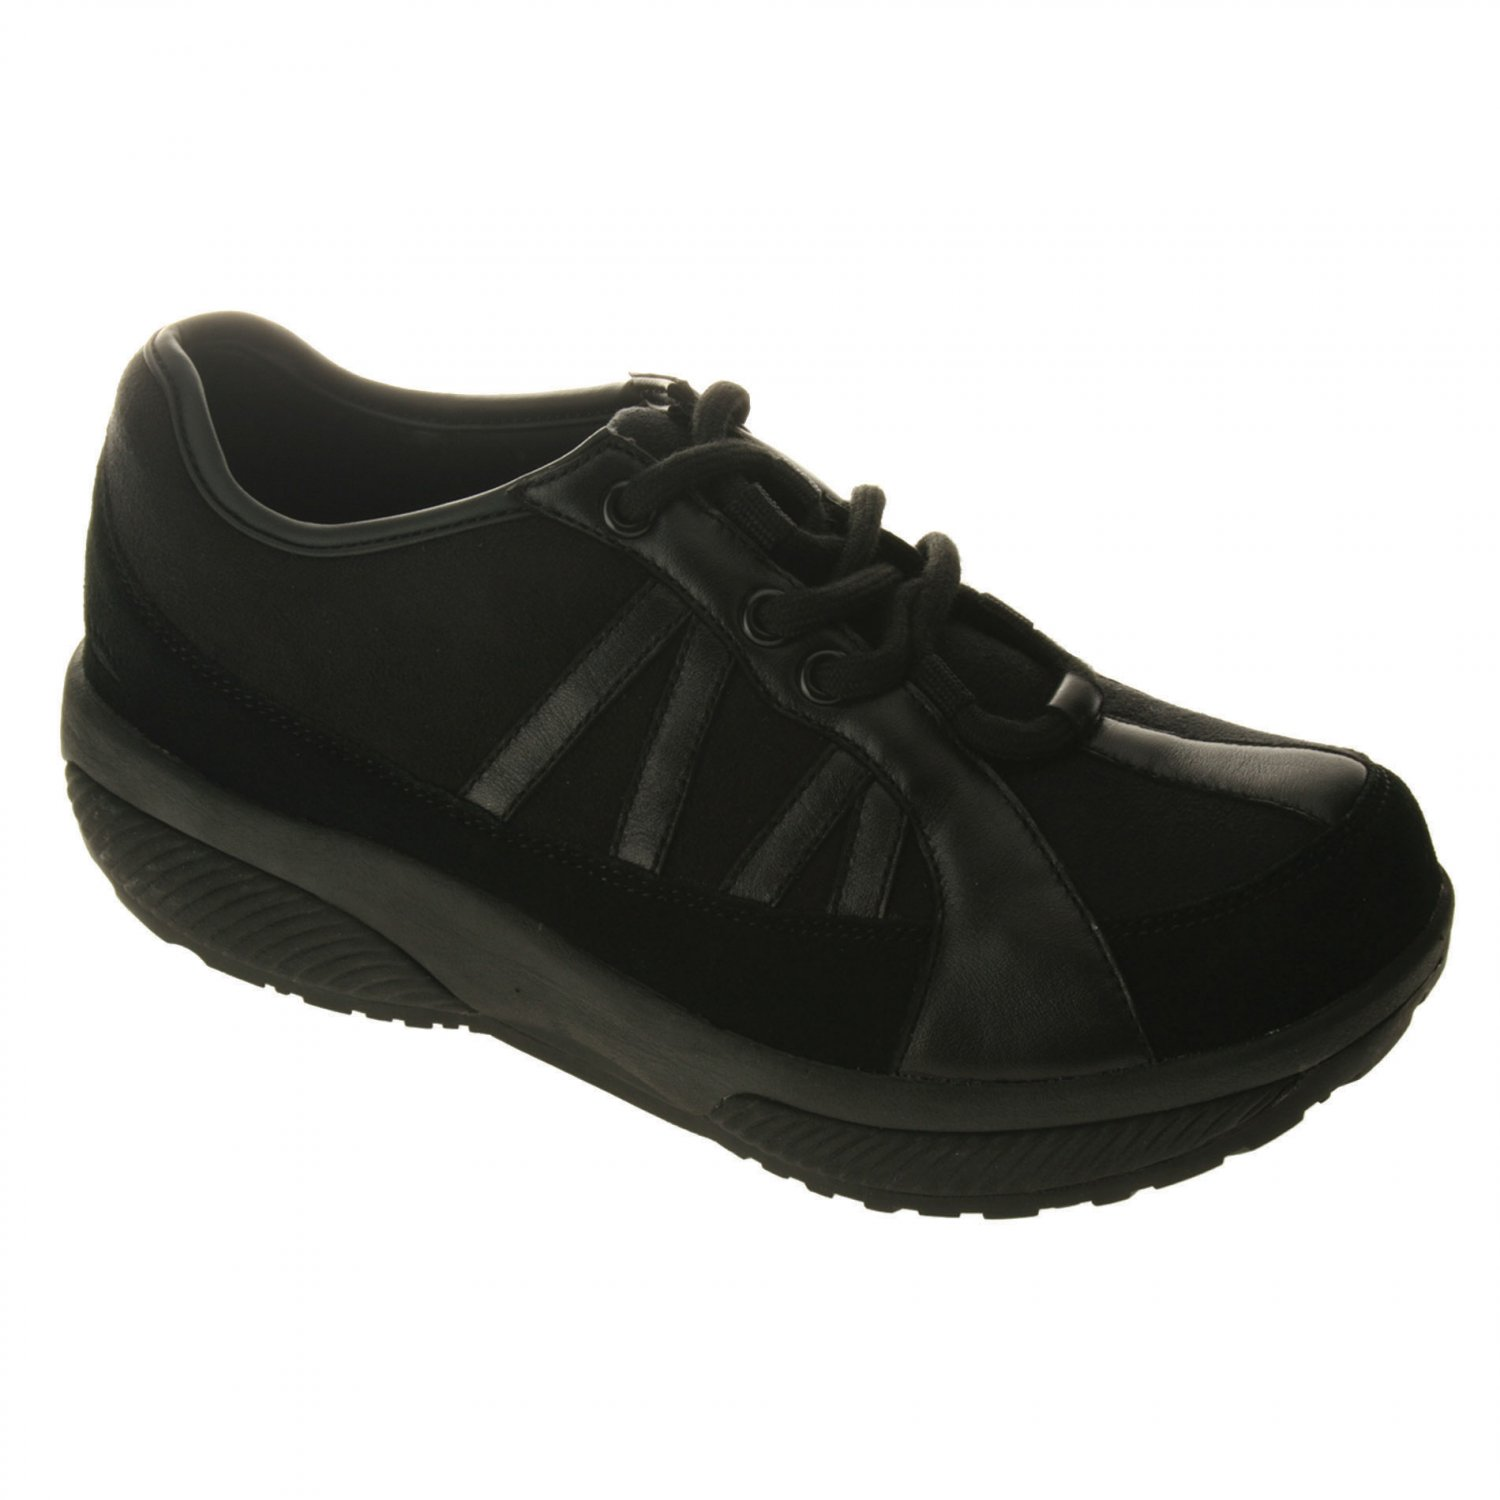 Spring Step RHYTHM Sneakers Shoes All Sizes & Colors $